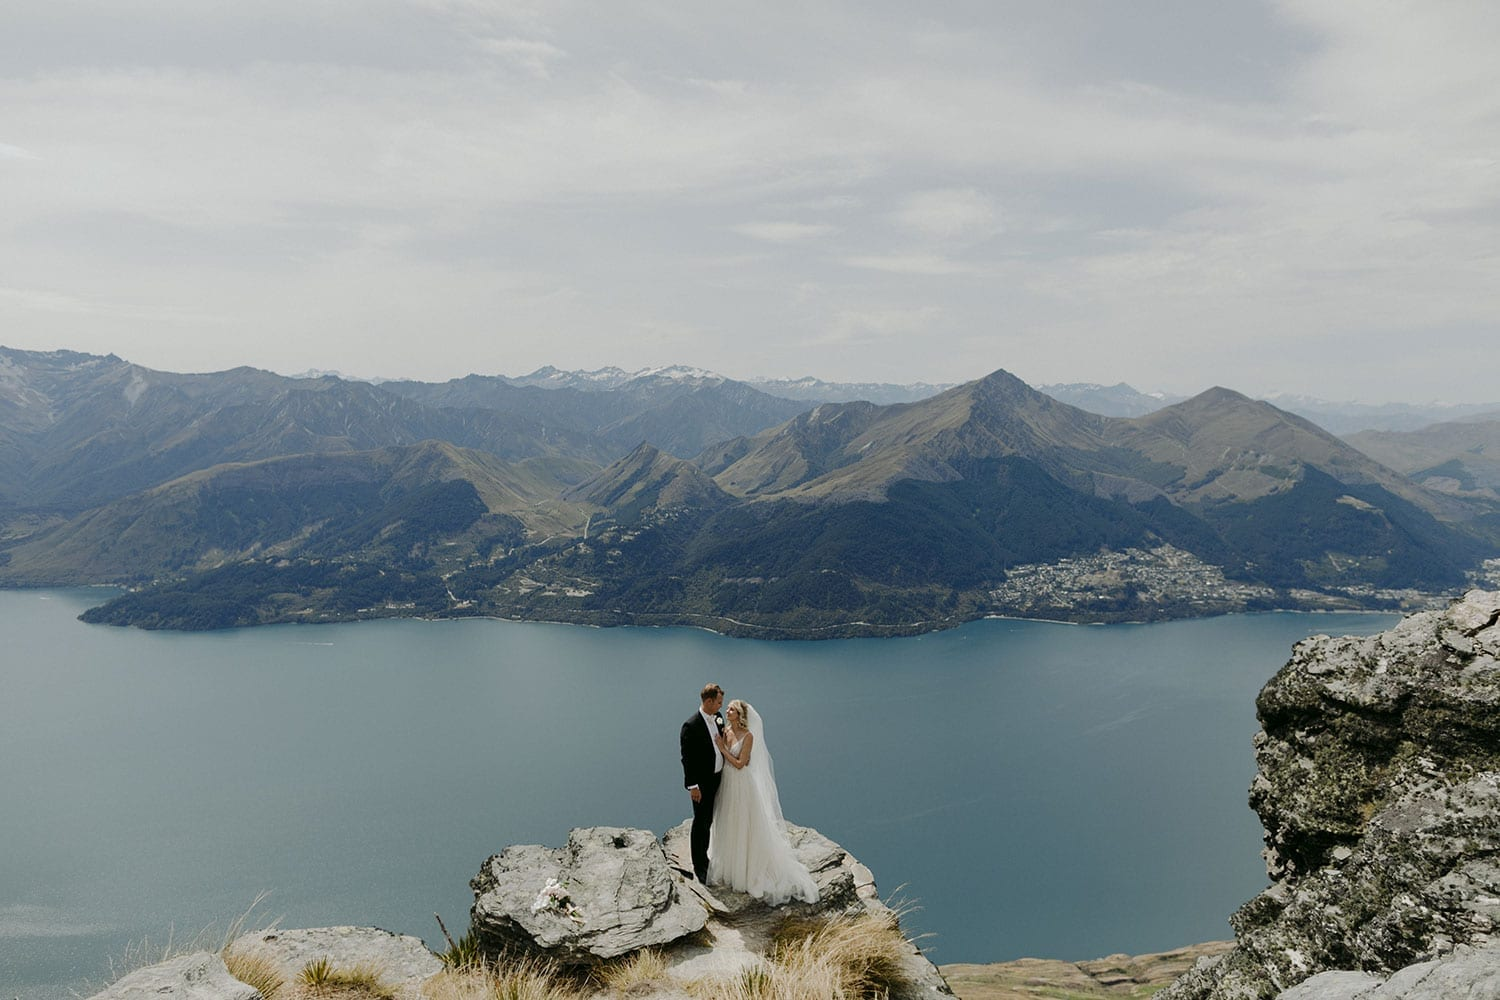 Vinka Design Features Real Weddings - bride in custom made Keiko gown from the Oriental affair collection with additional delicate dimensional flower lace added to the bodice and beading added to the skirt layers. Bride and groom on the cliffs with Lake Hays in the background